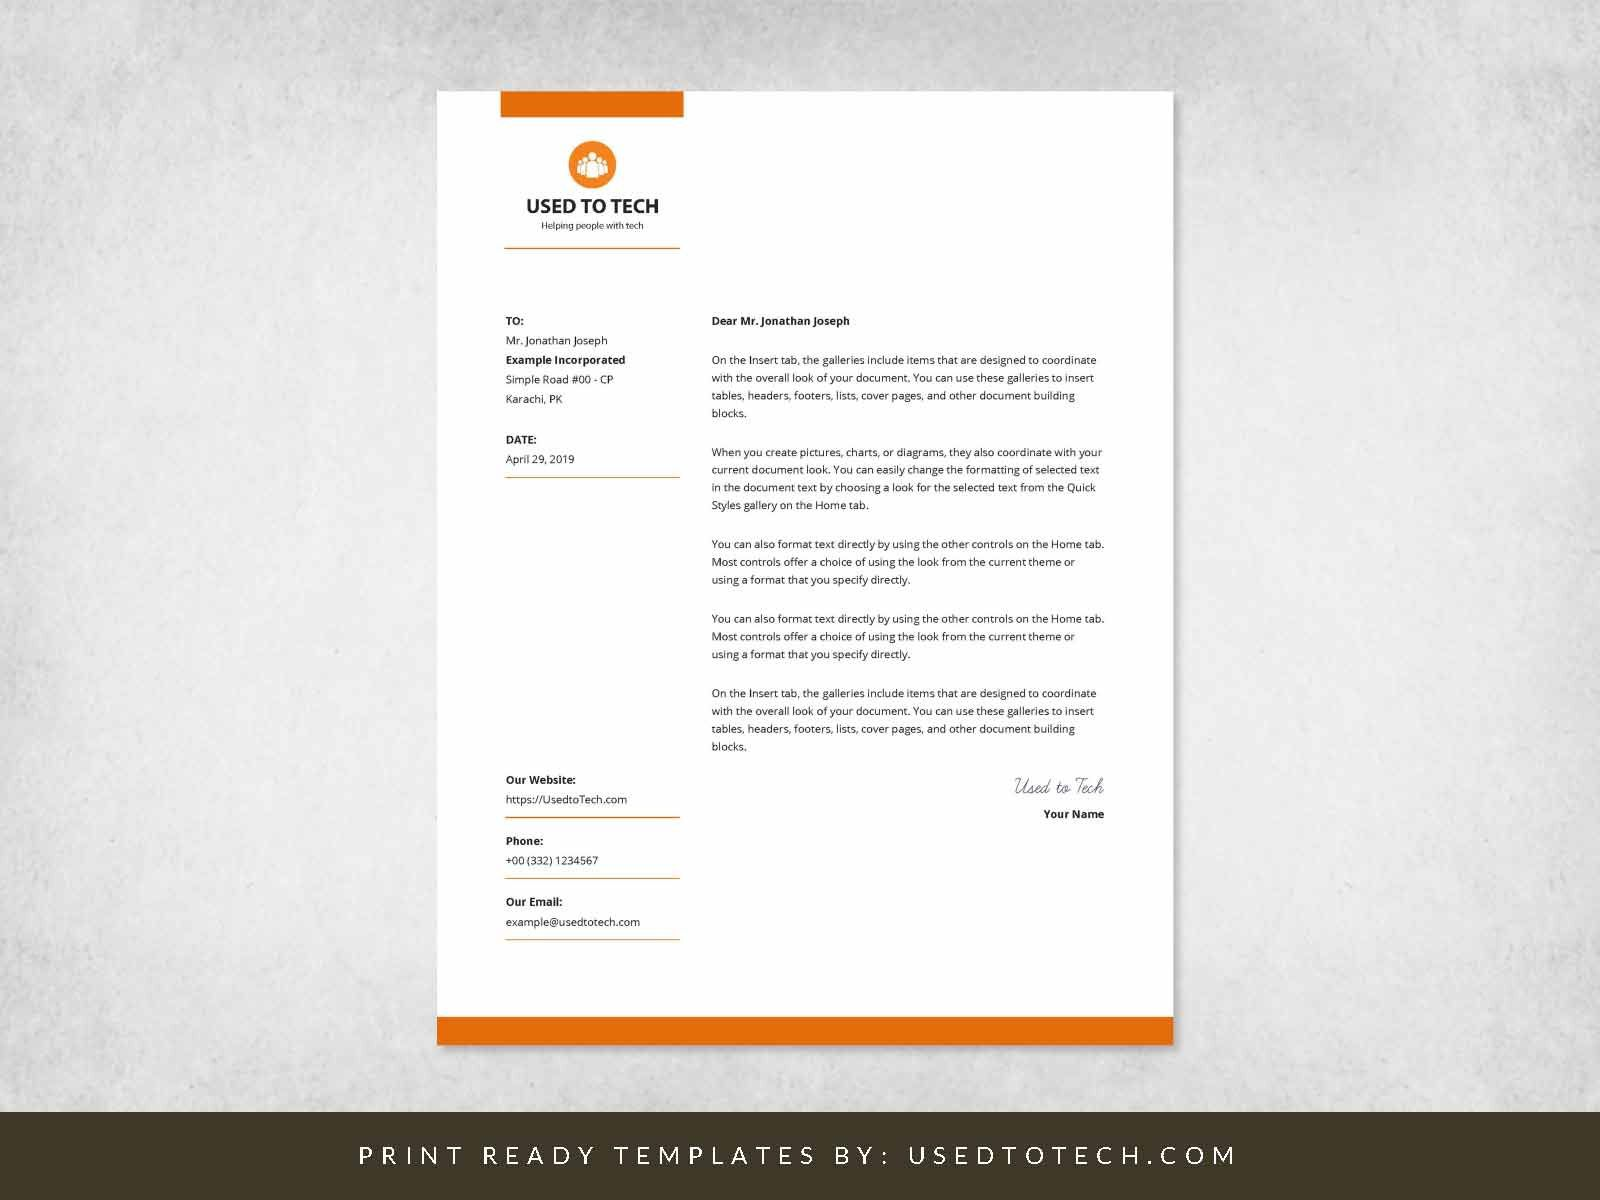 000 Best Simple Letterhead Format In Word Free Download Highest Clarity Full